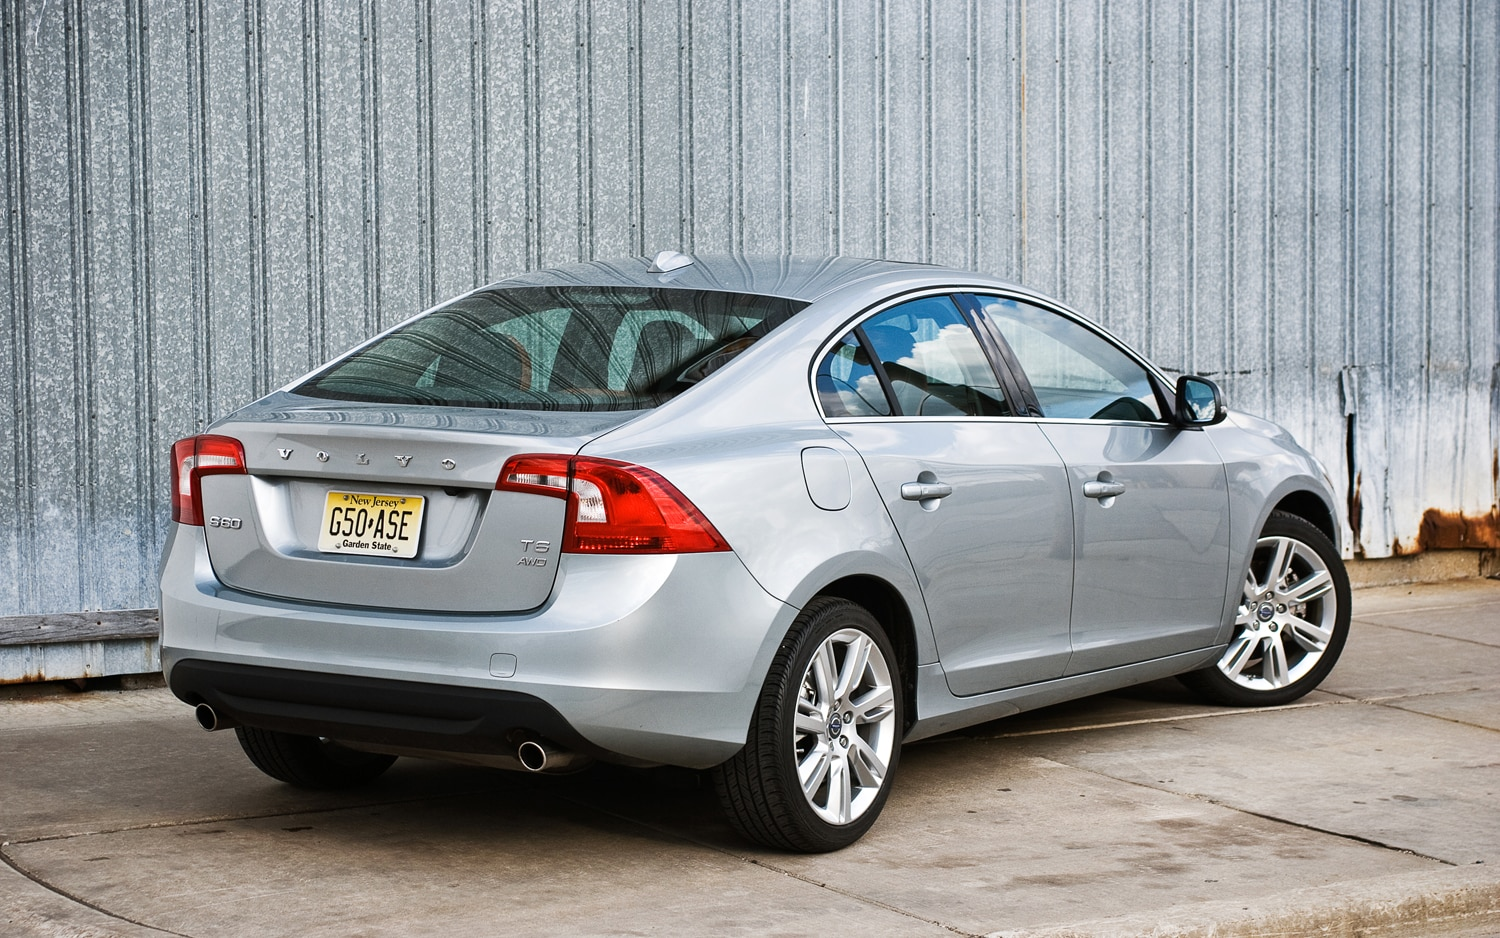 2012 Volvo S60 T6 AWD rear right side view - 2012 Volvo S60 T6 Awd